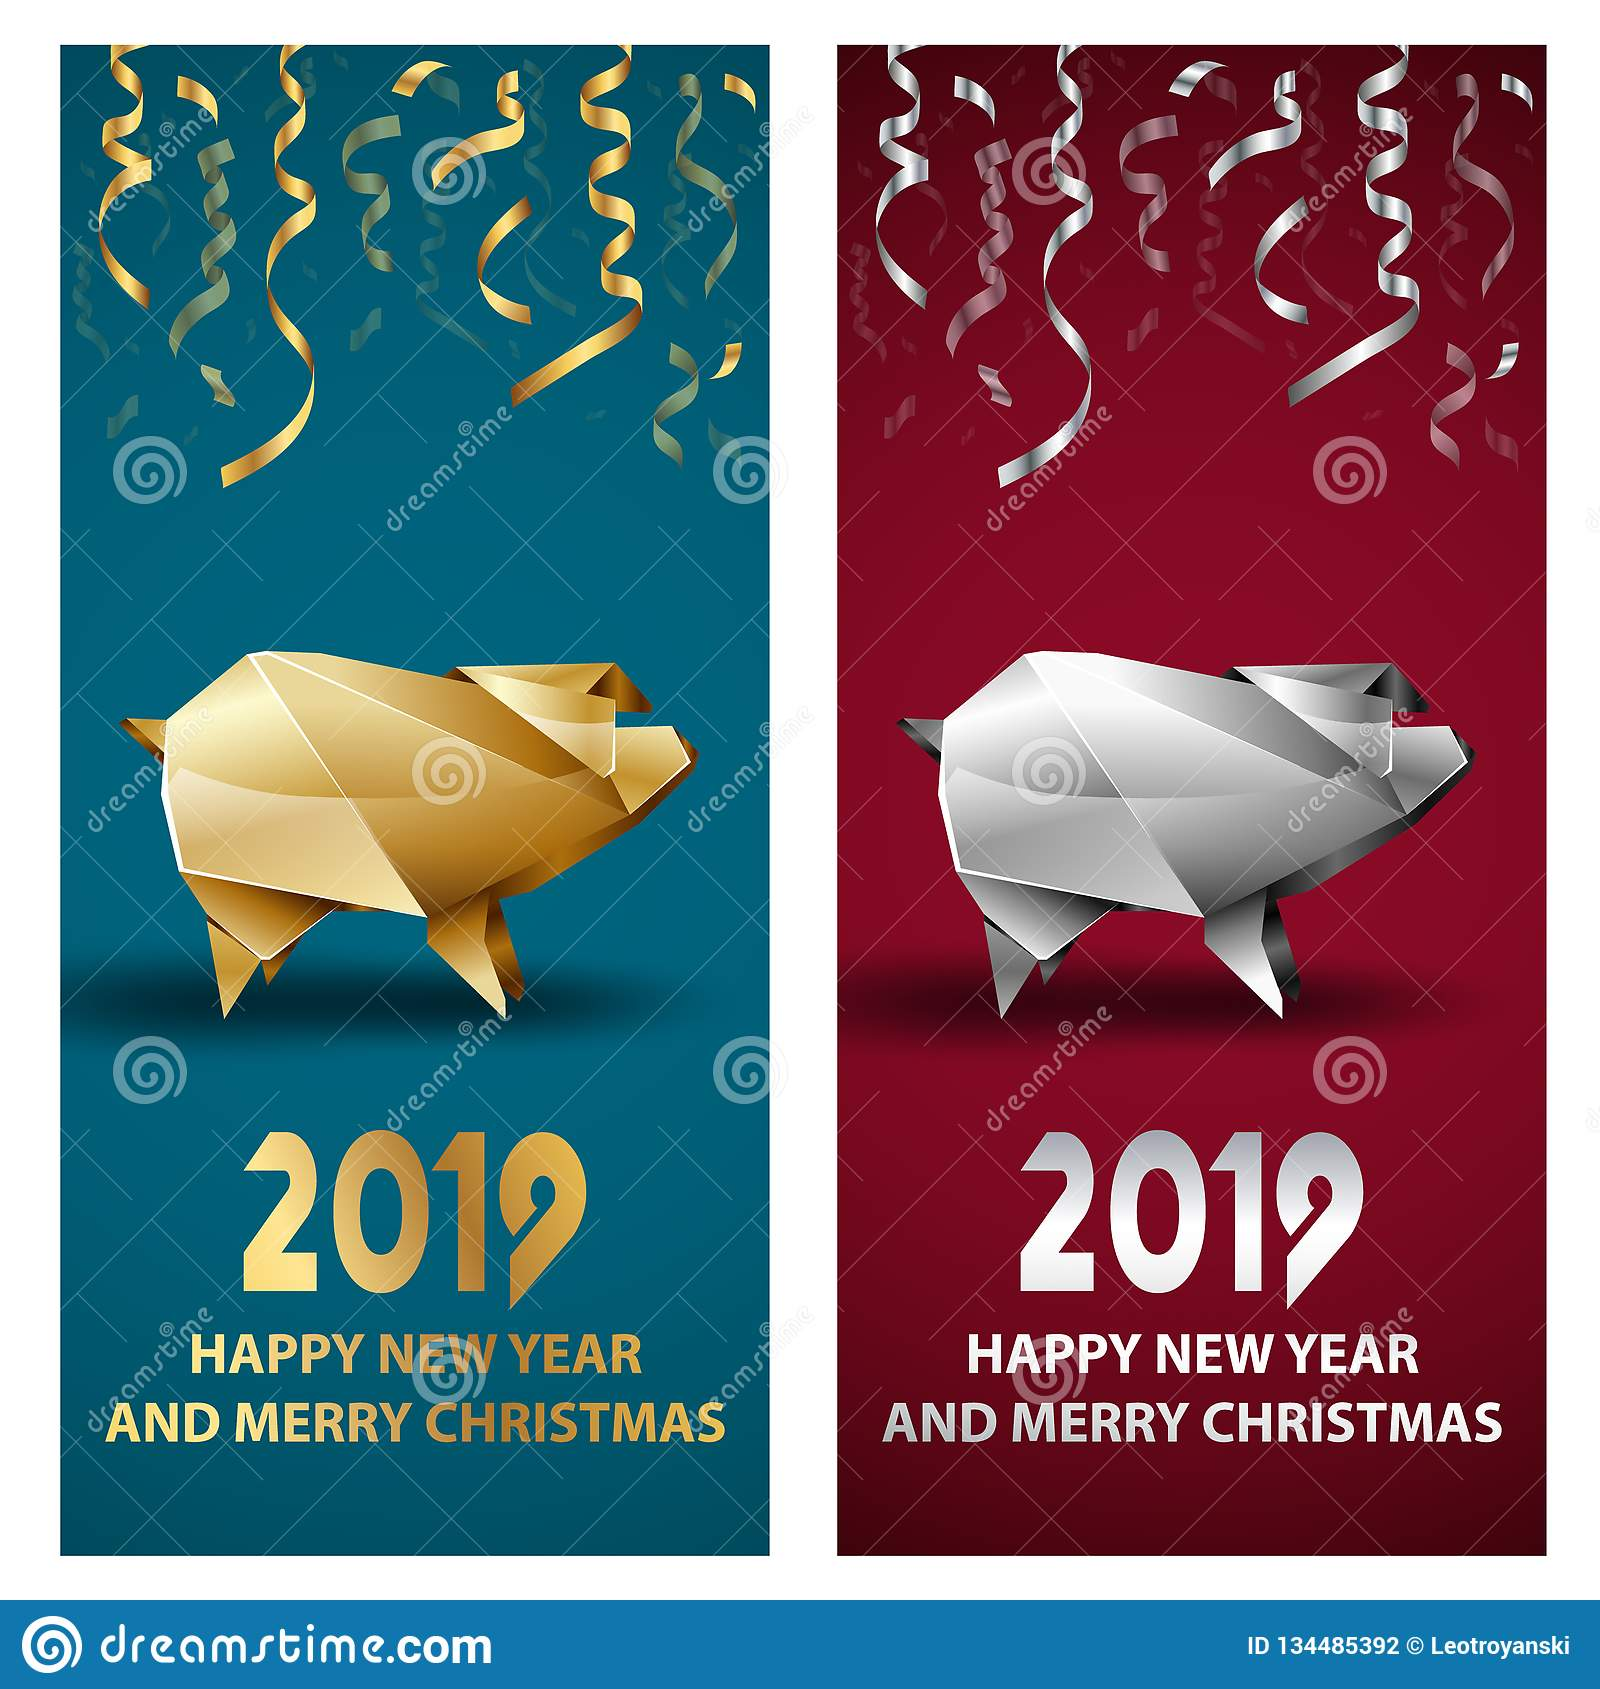 Golden and Silver Pig as a Symbol of Chinese New Year 2019.